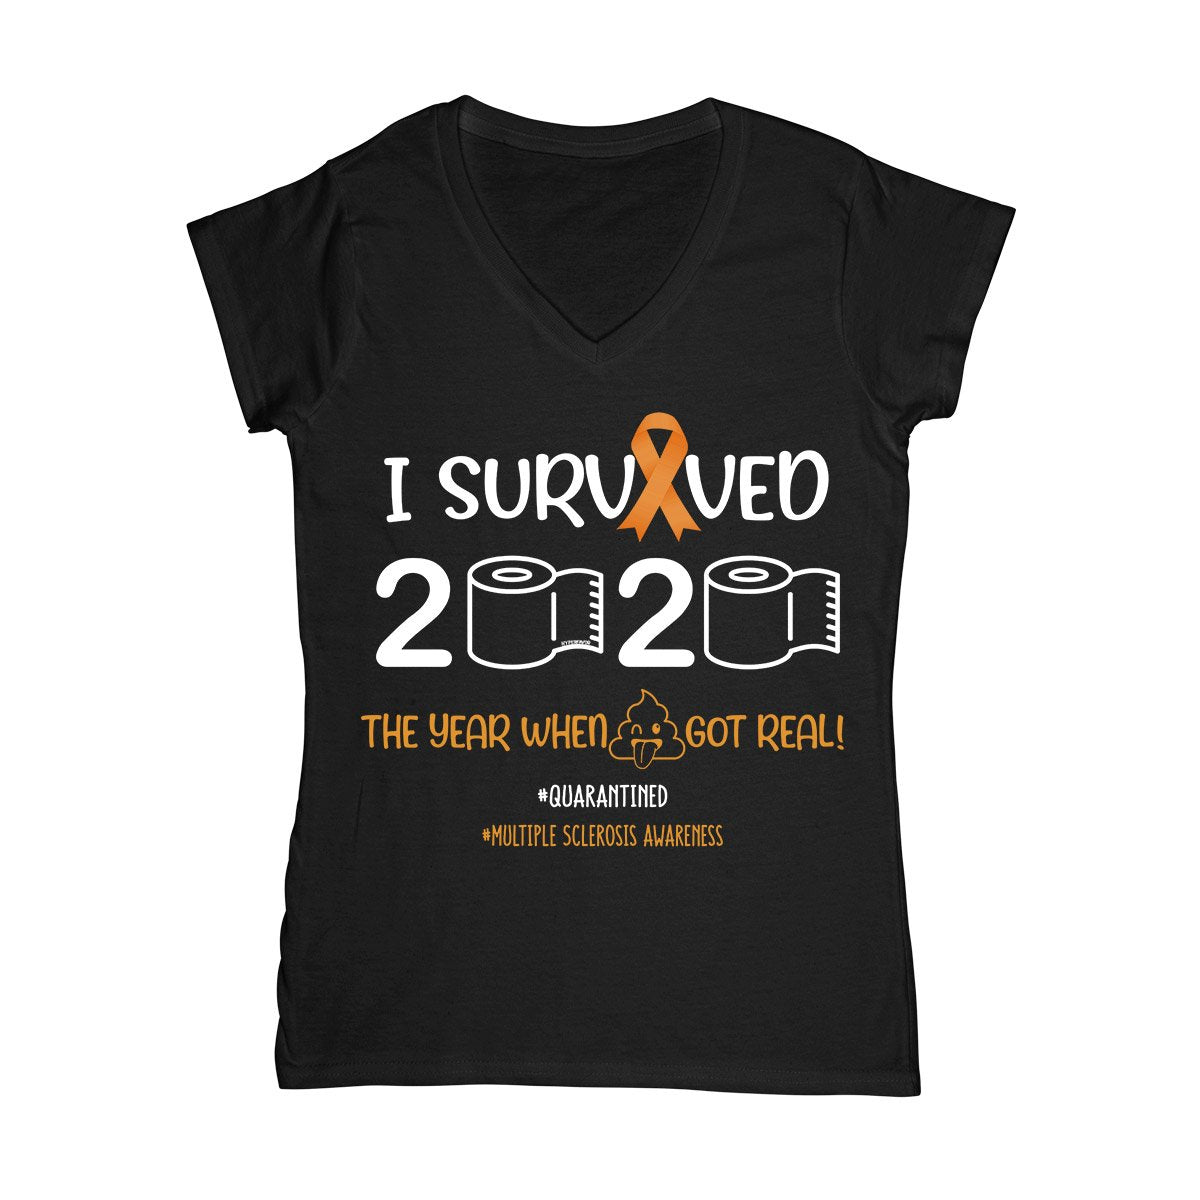 I Survived 2020 MS Women V-neck T-shirt, MS Awareness Month Shirt, Multiple Sclerosis Awareness Gift